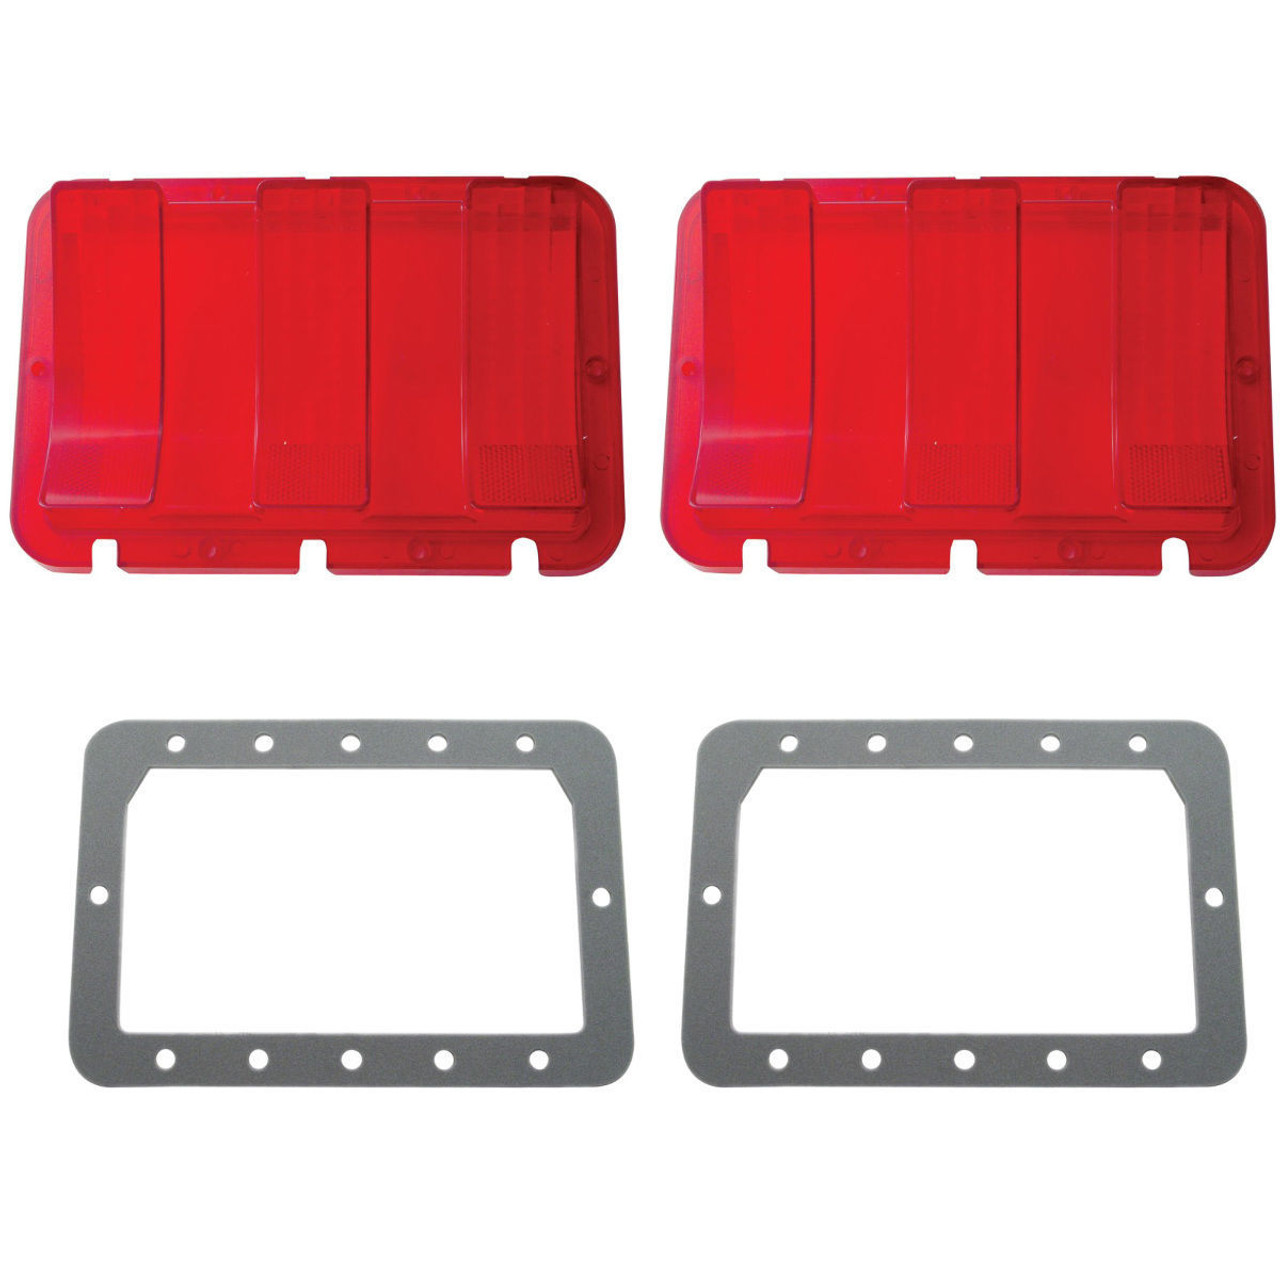 (2) Tail Light Lenses w/ Gray Foam Gaskets, Compatible with Ford Mustang 1967-68